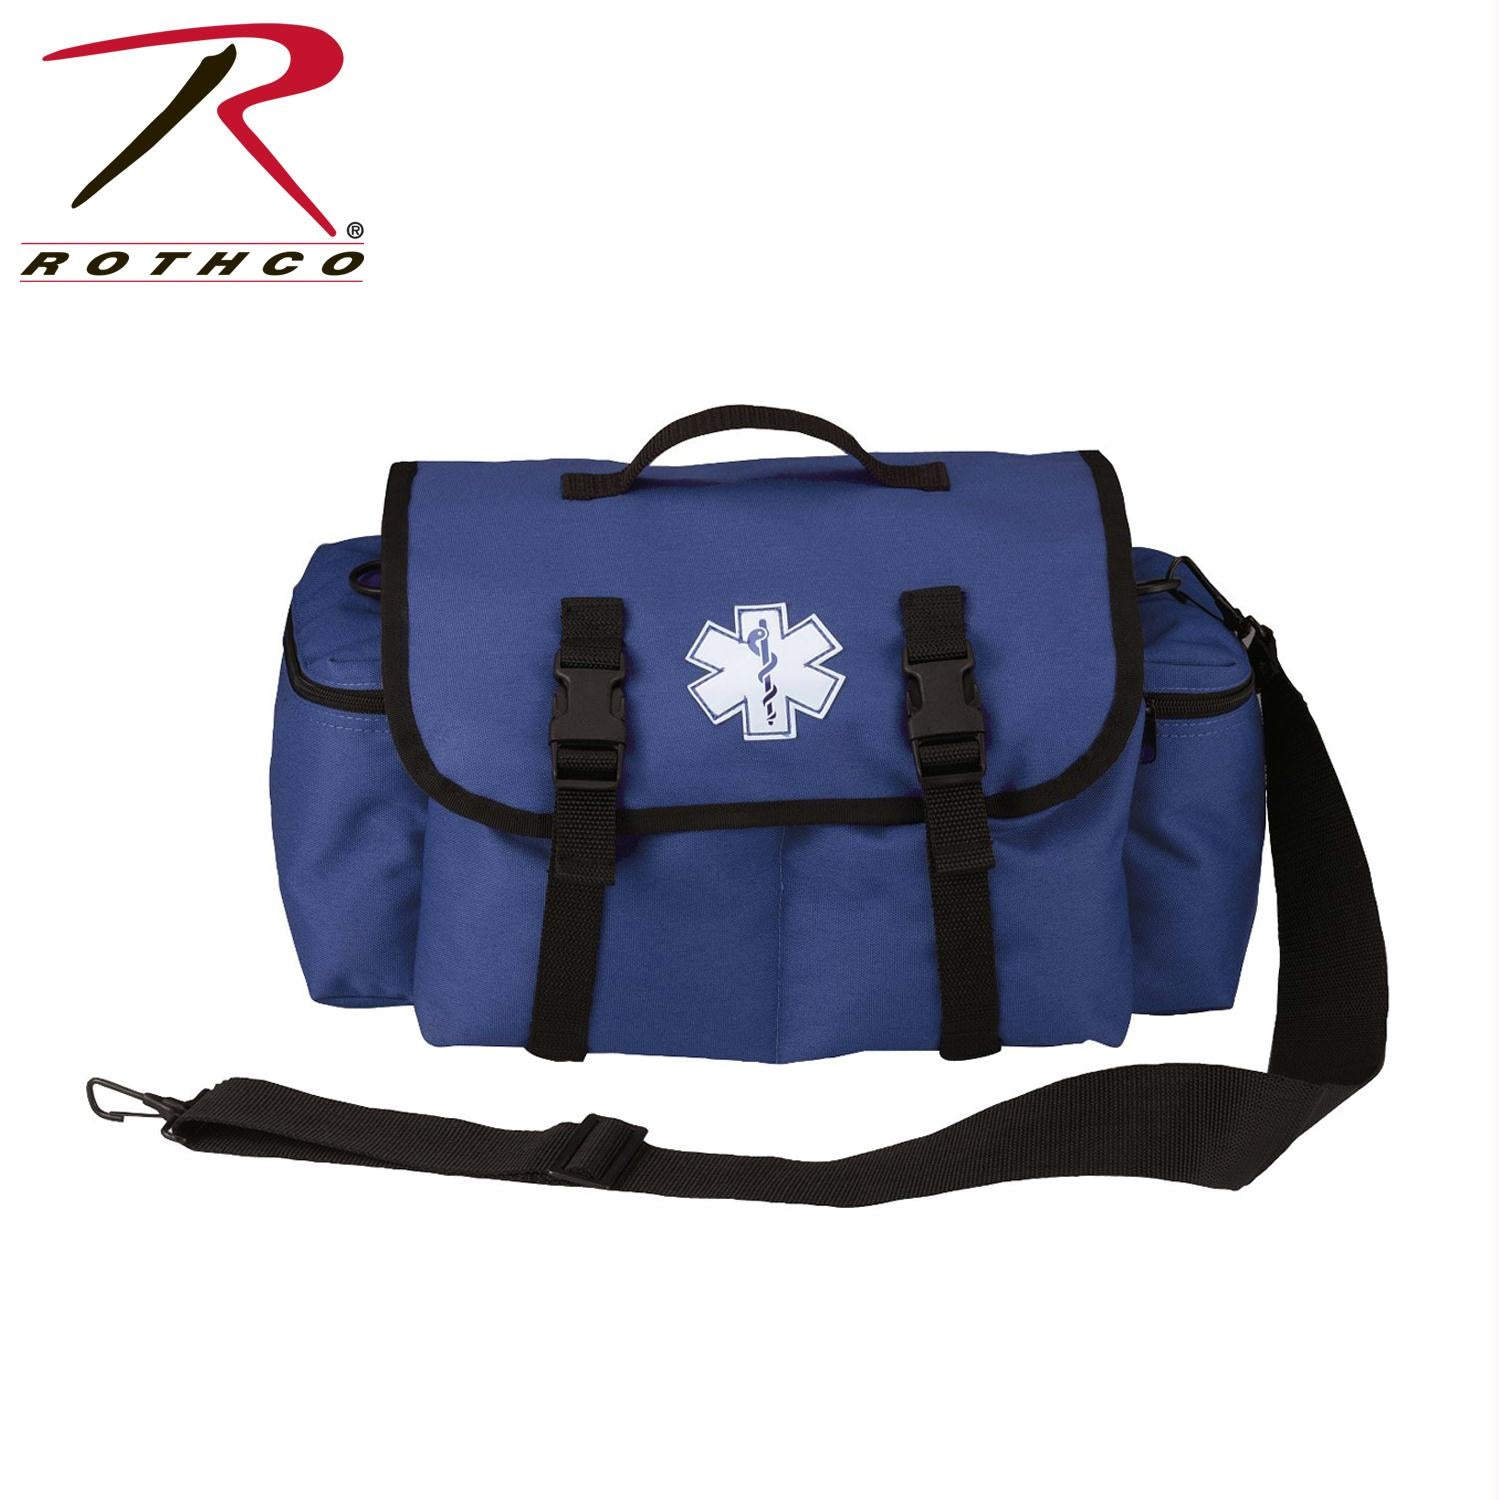 Rothco Medical Rescue Response Bag - Blue